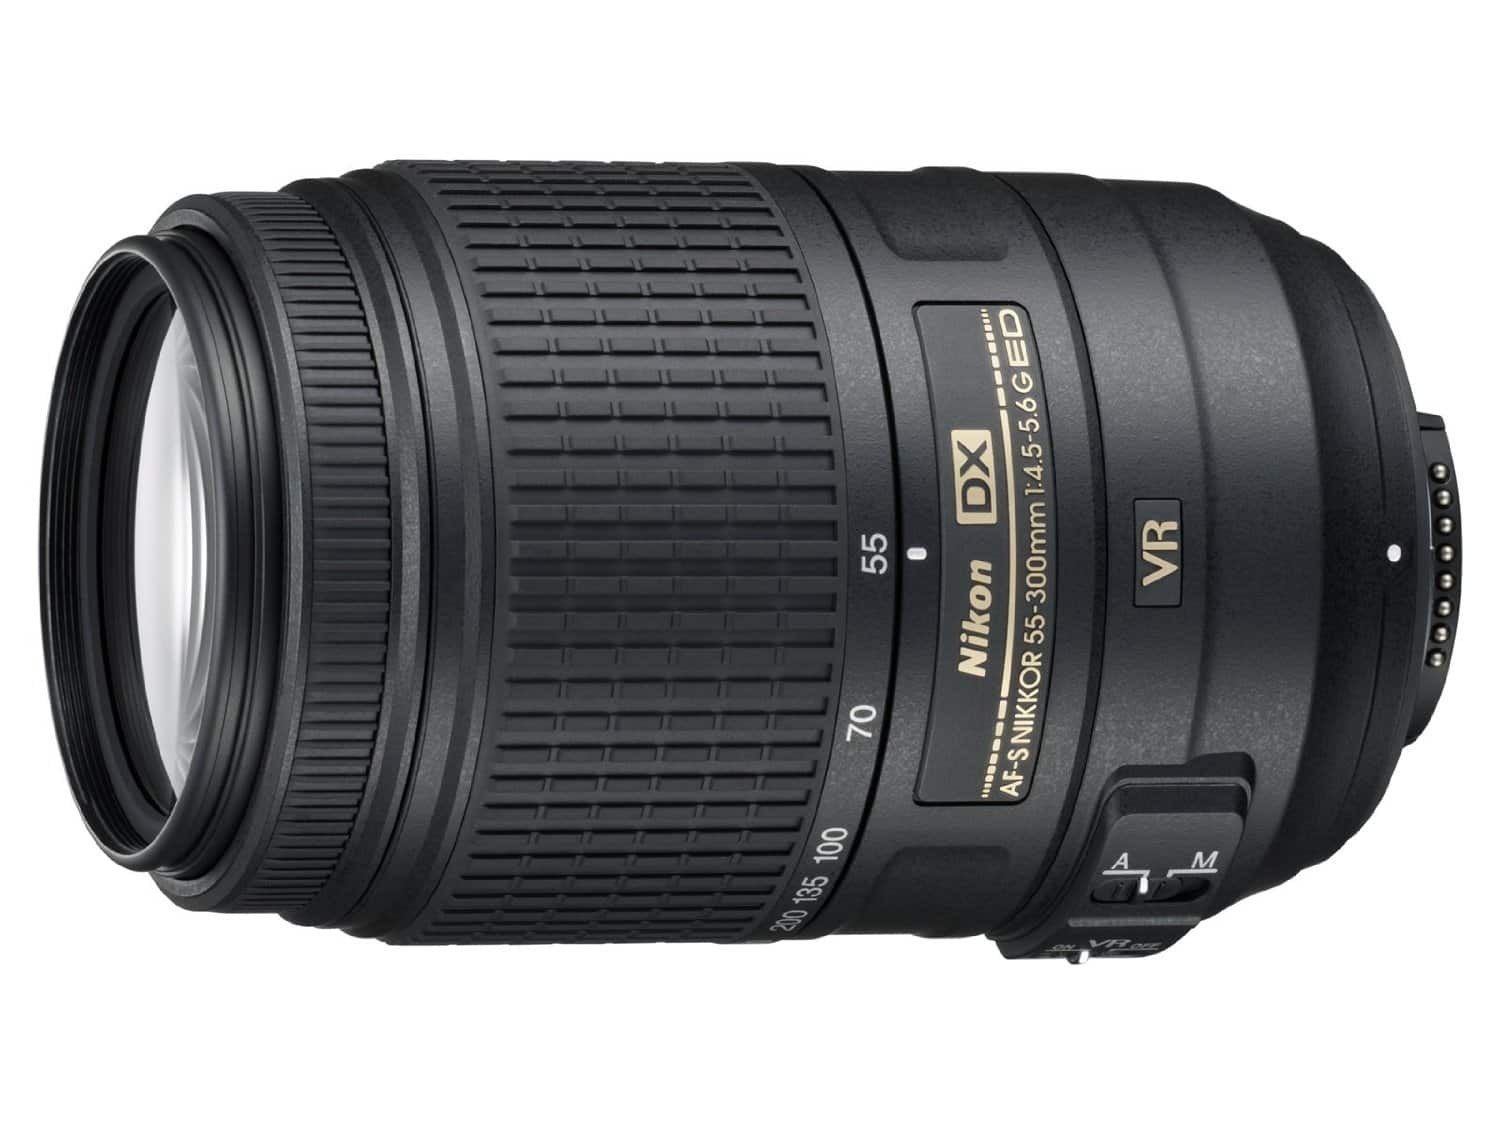 Camera Lens Buying Guide: What DSLR Lens Is Best For You